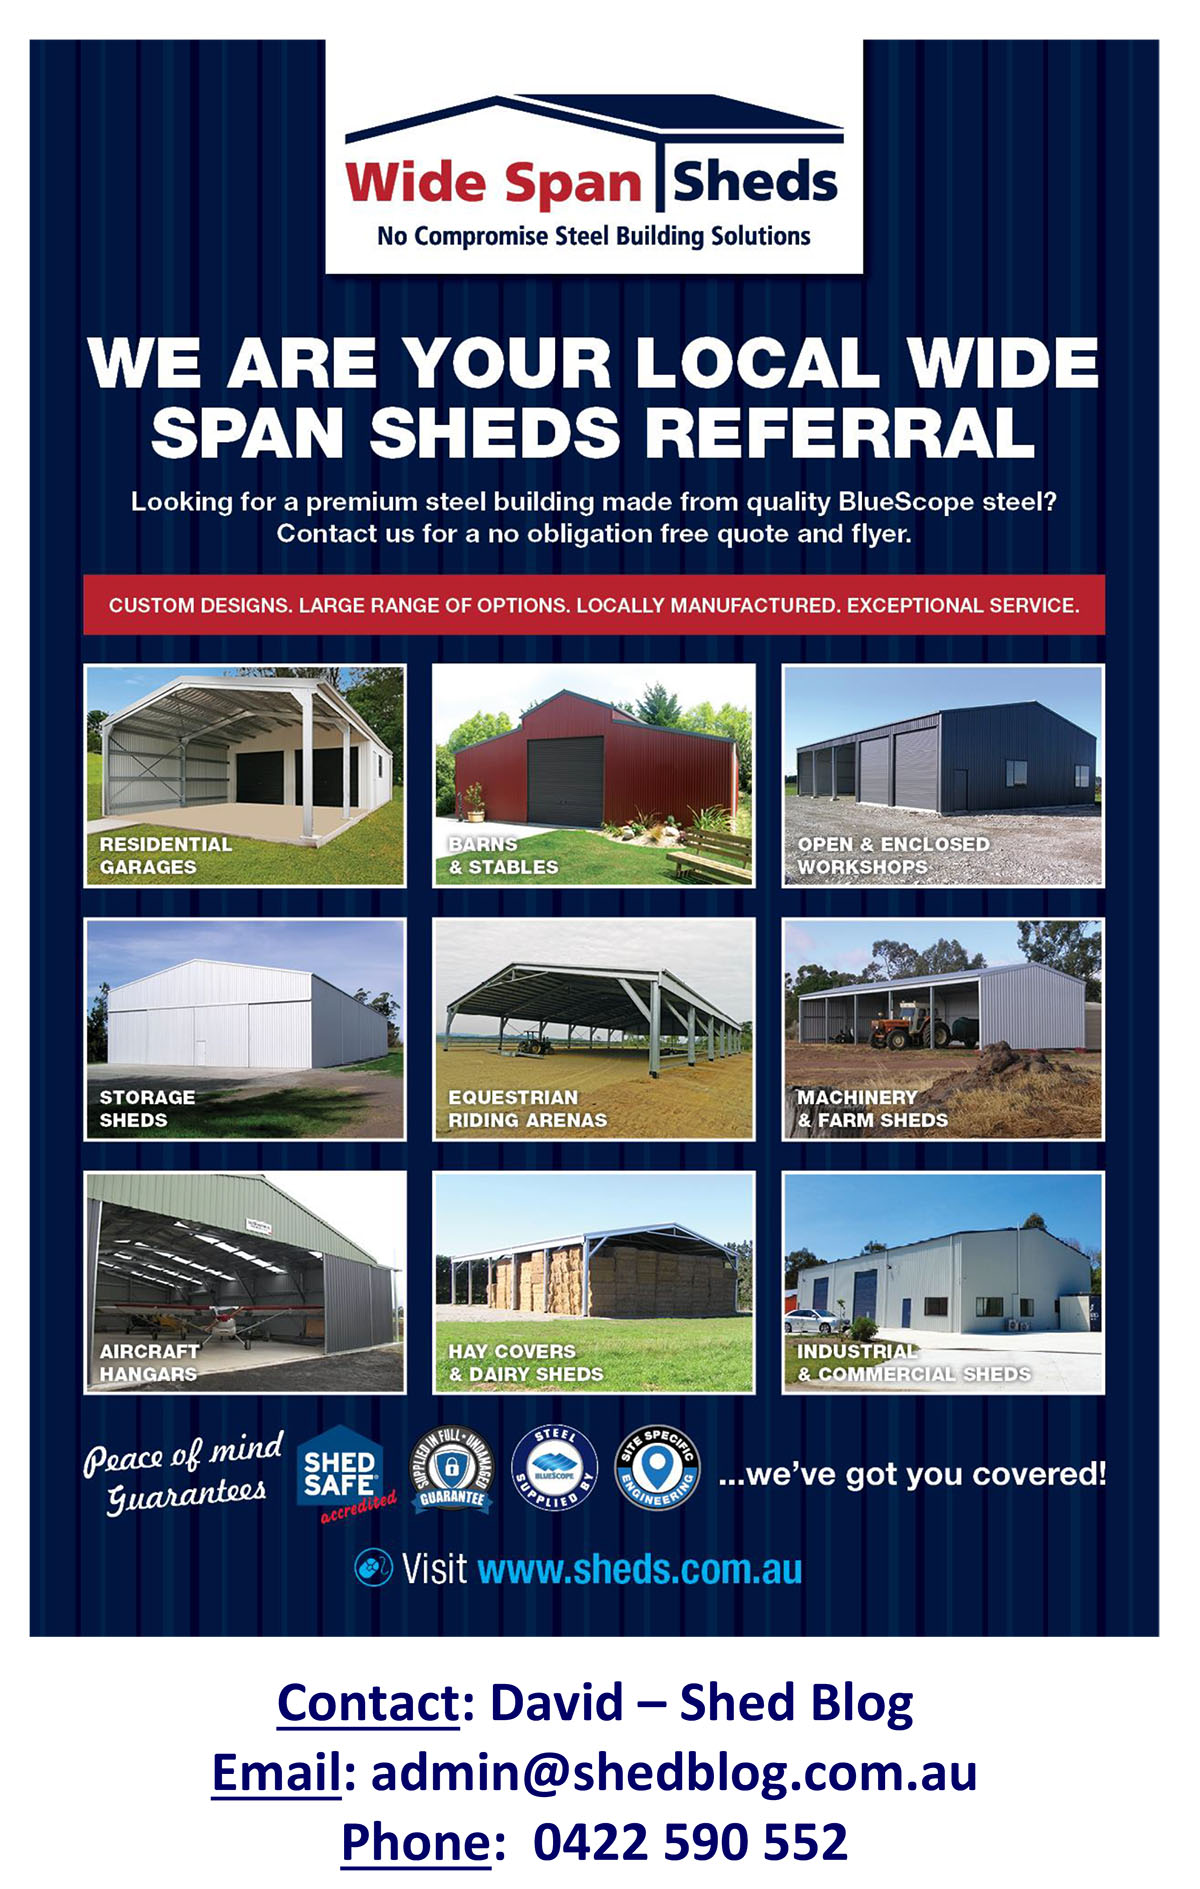 Customised Wide Span Sheds local agent flyer